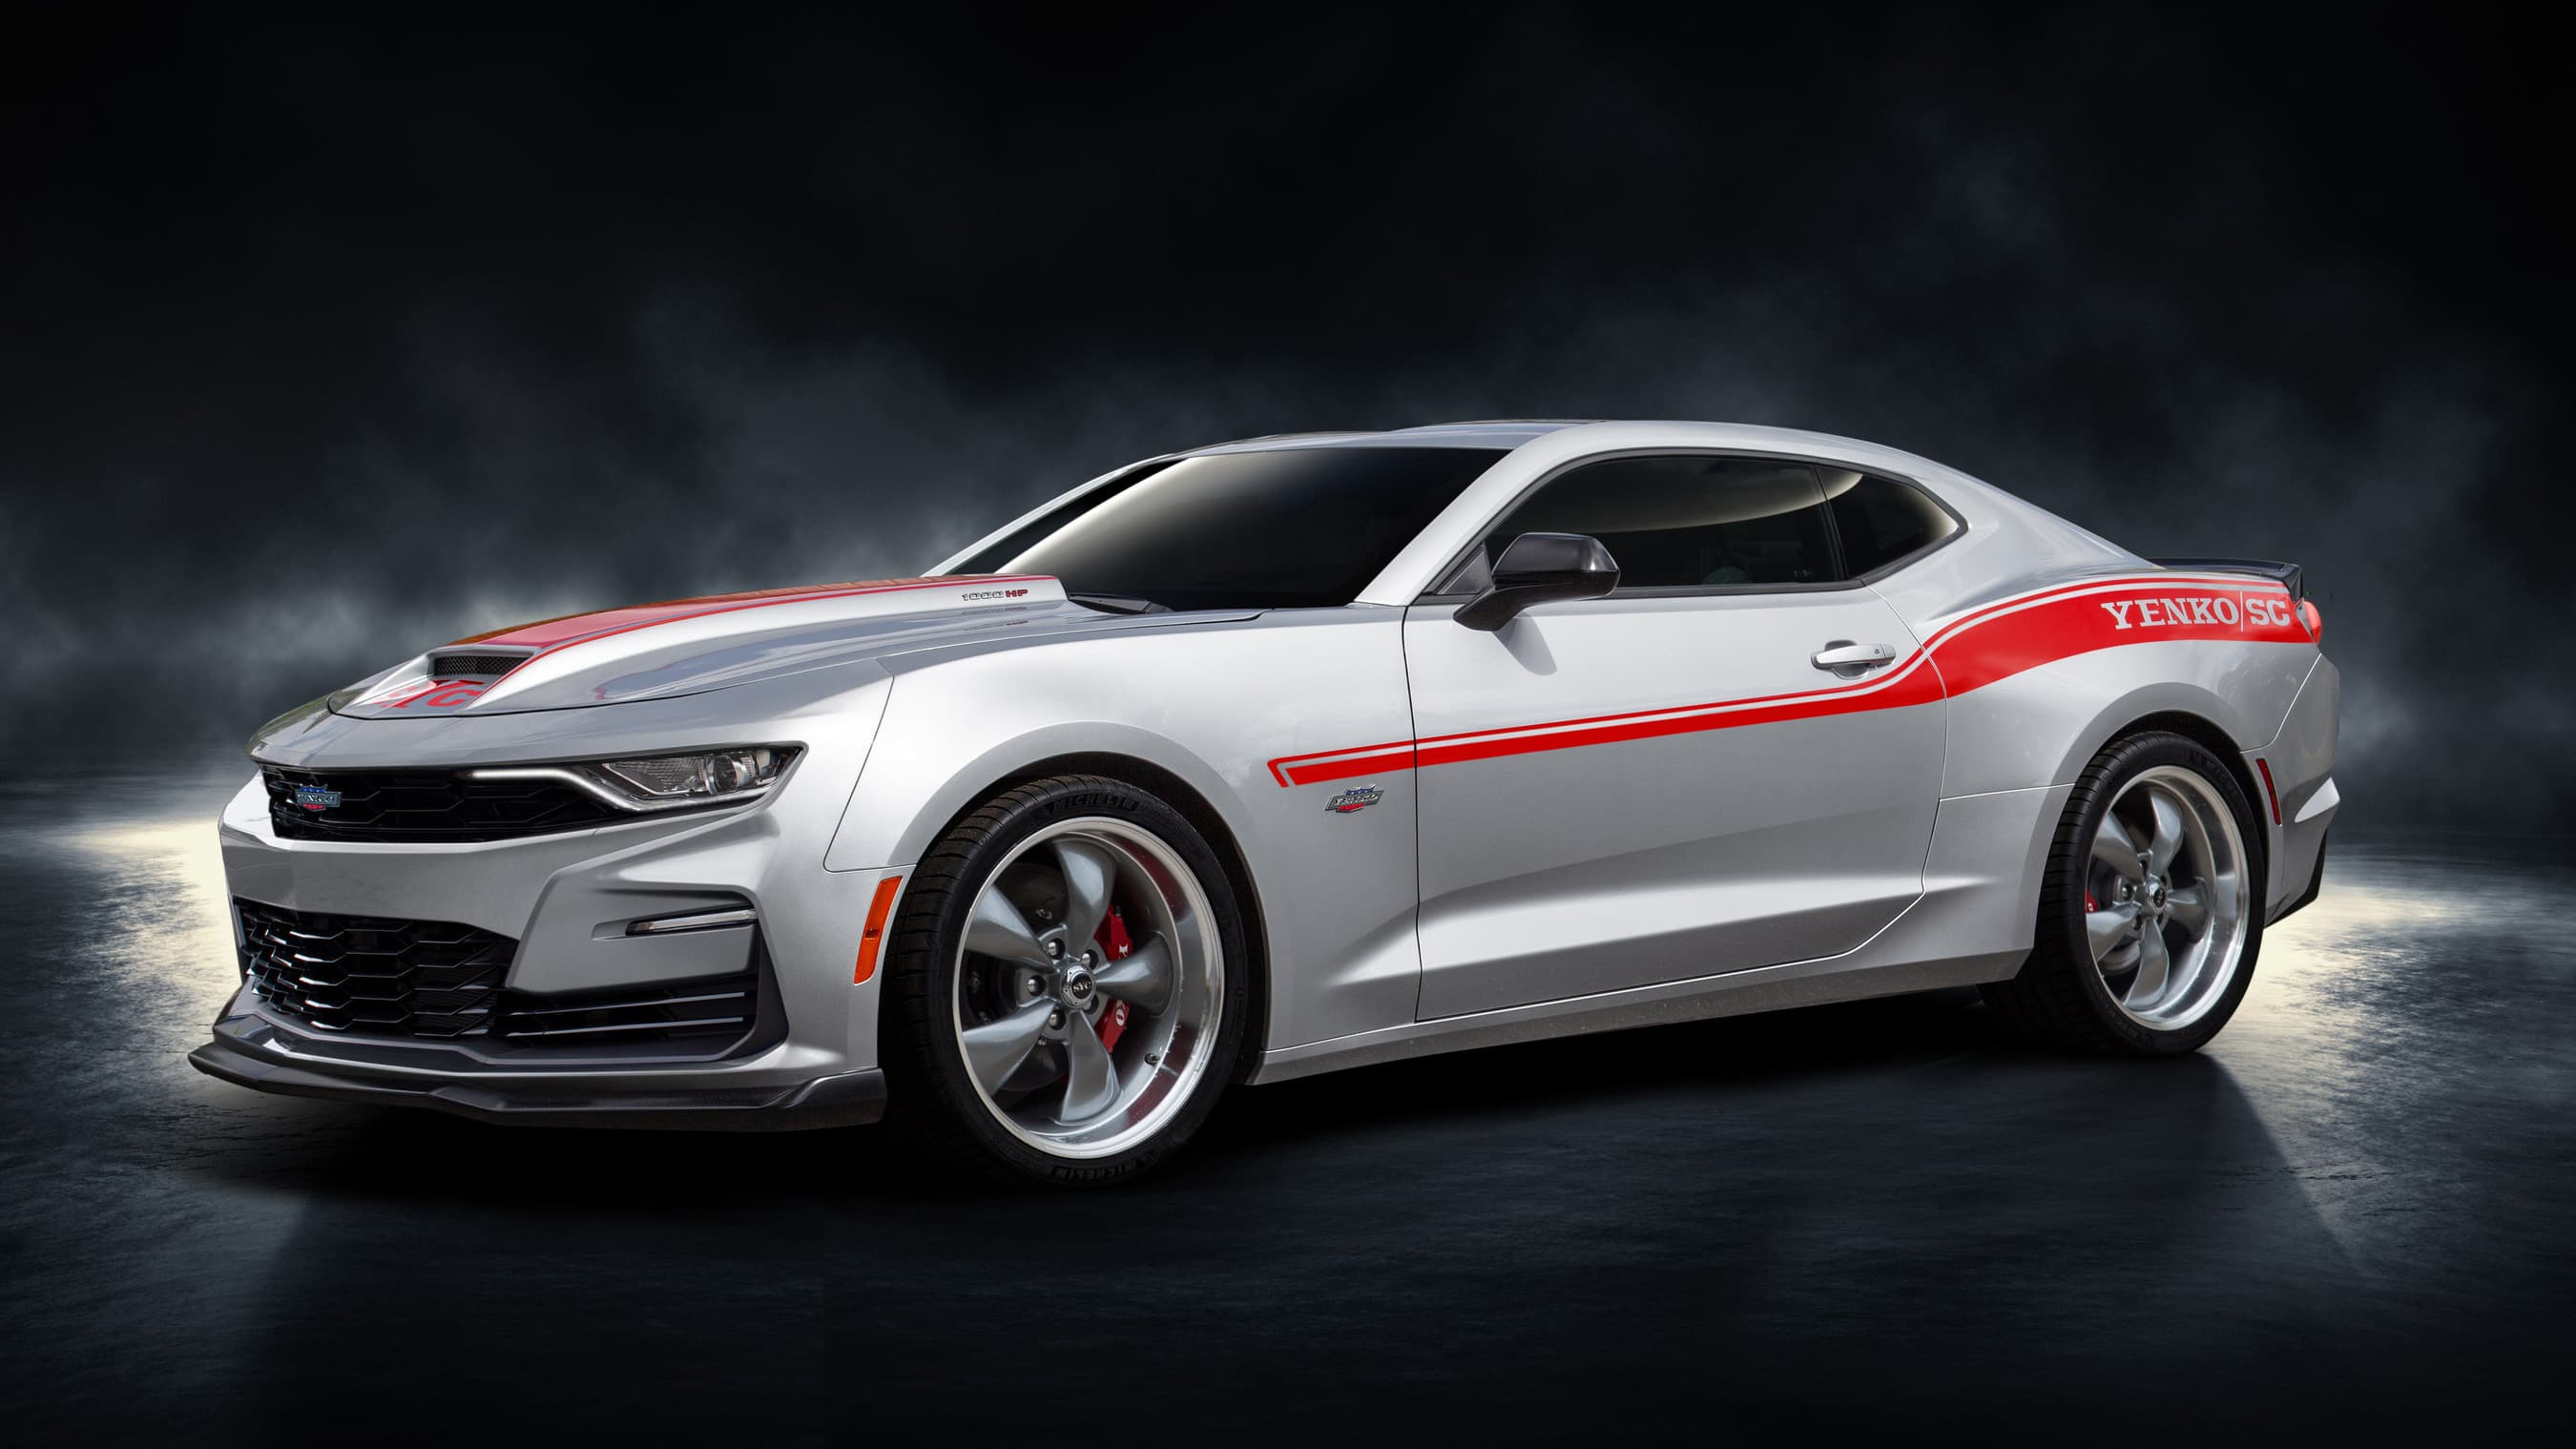 SVE will sell you a 2020 Yenko Camaro with 1,000 horsepower for only $69,000